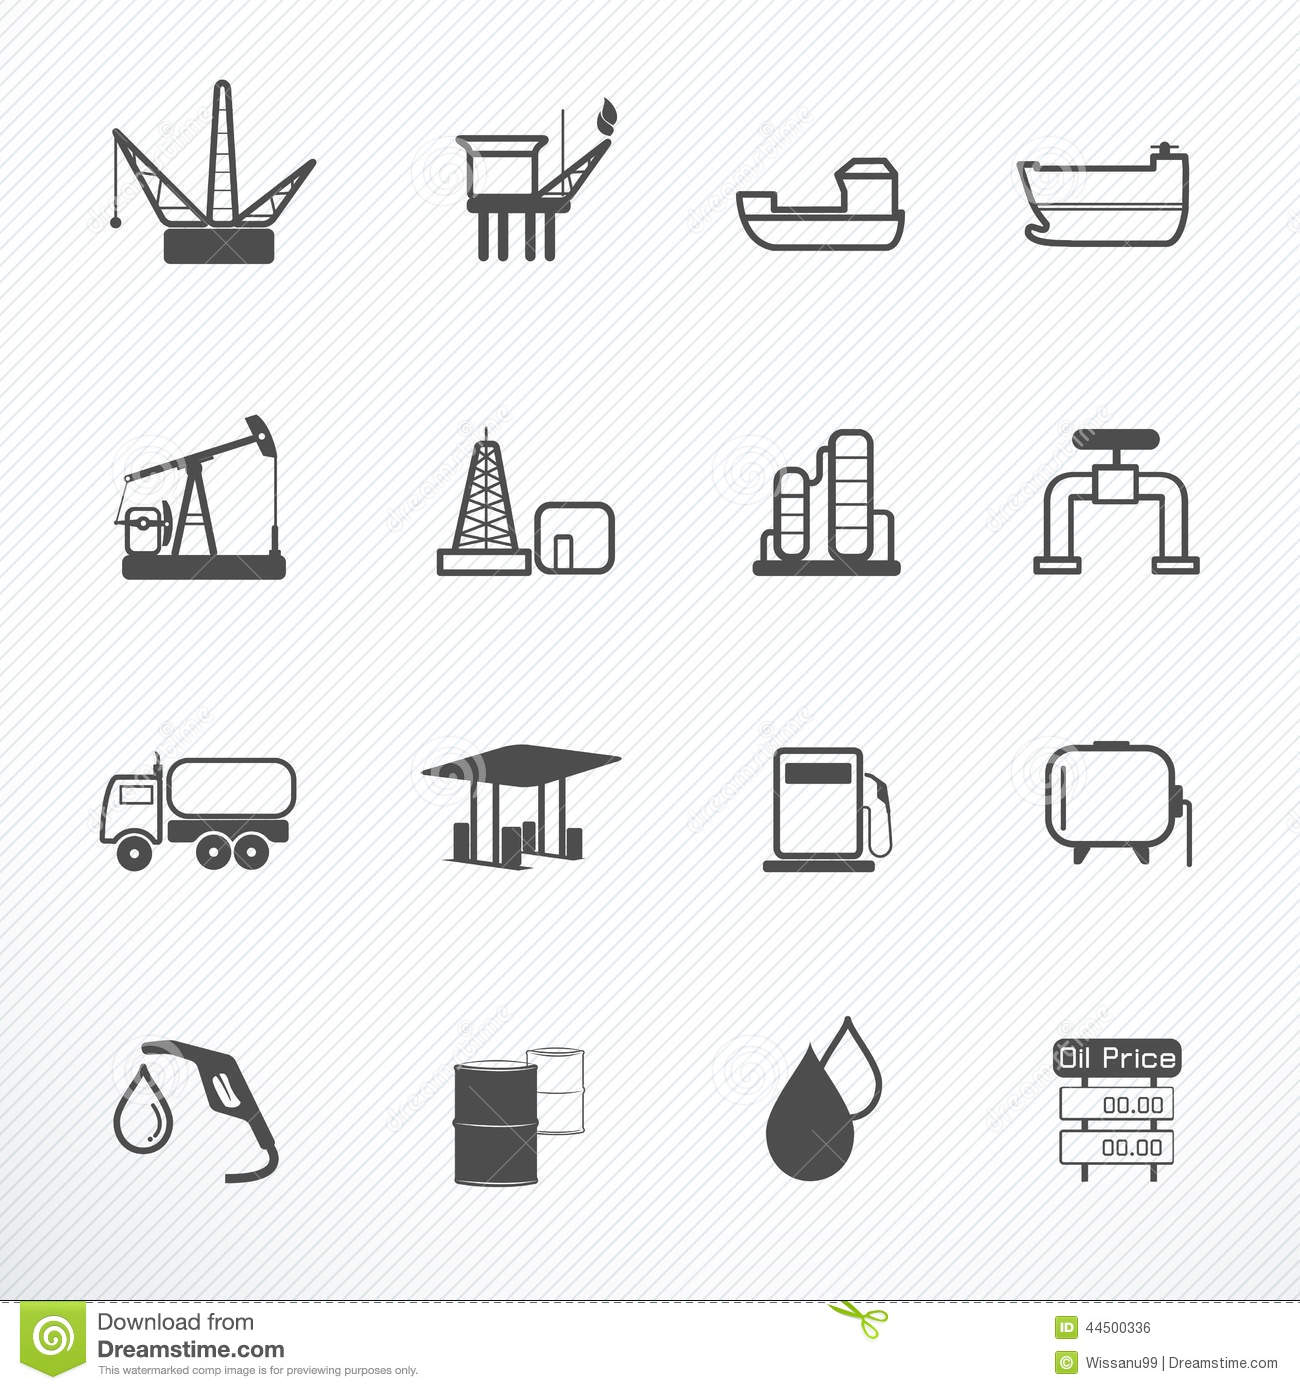 Oil Production icon vector illustration